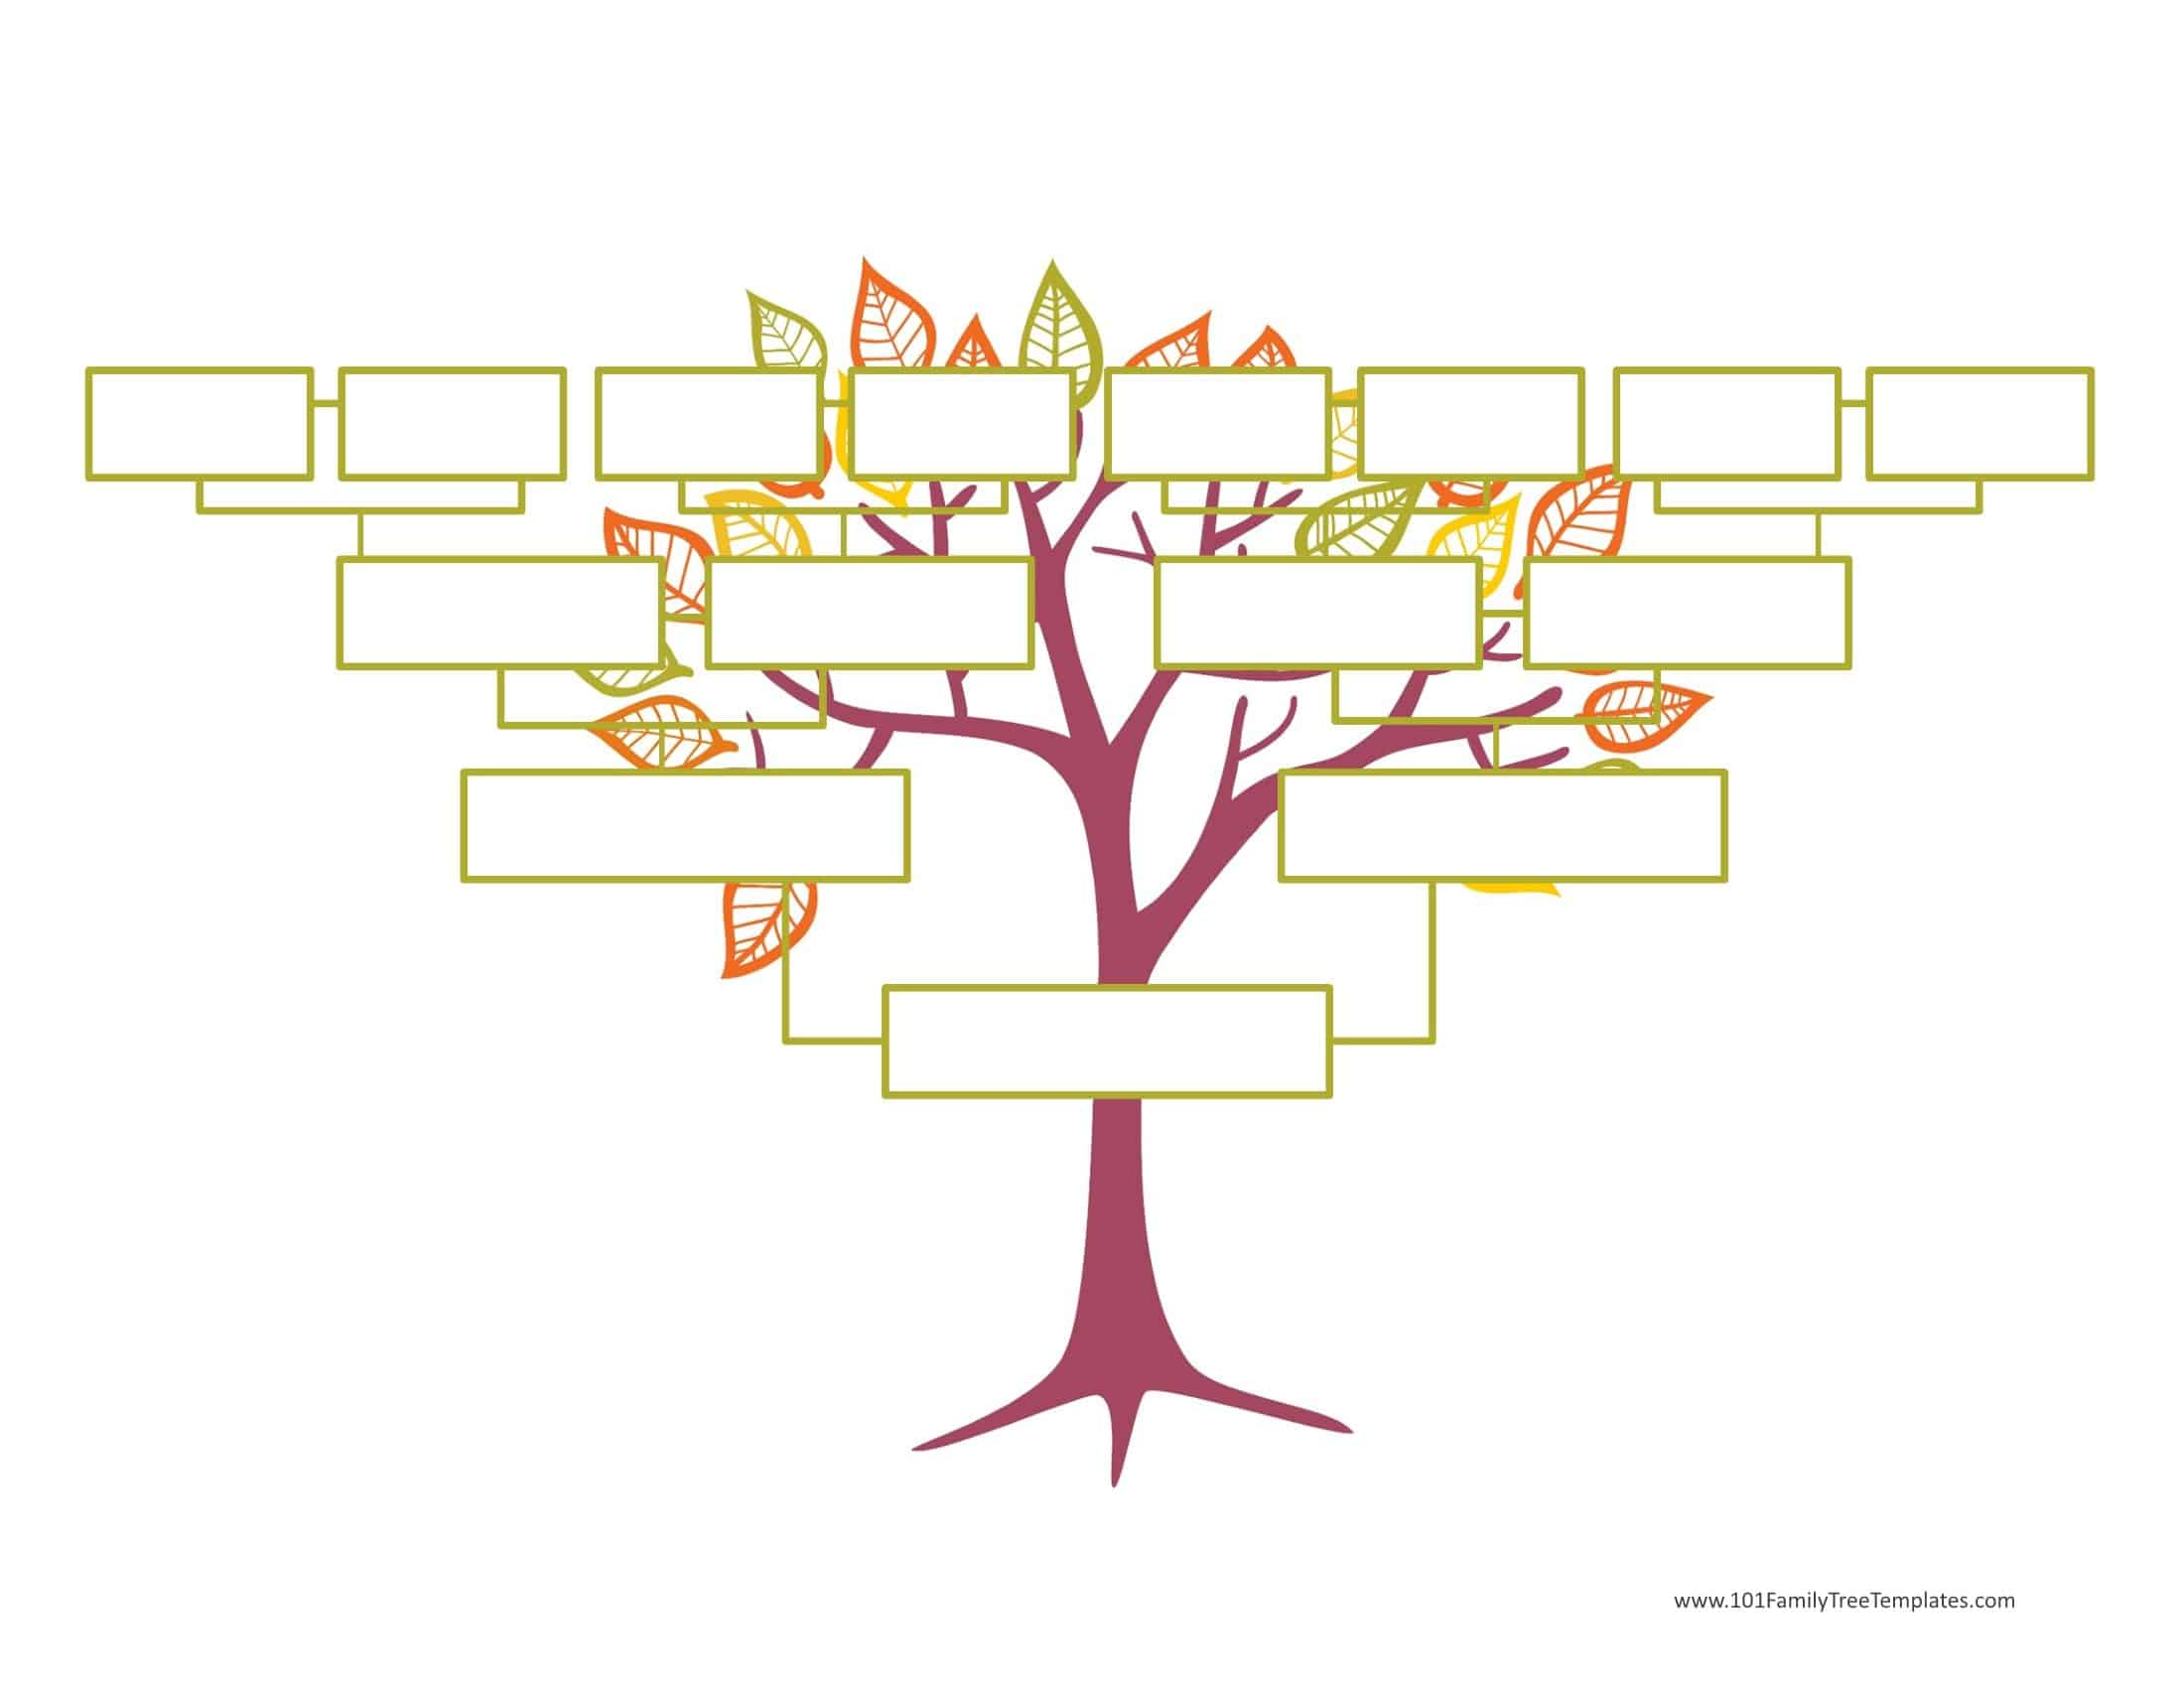 Blank Family Tree Template  Free Instant Download Intended For Fill In The Blank Family Tree Template